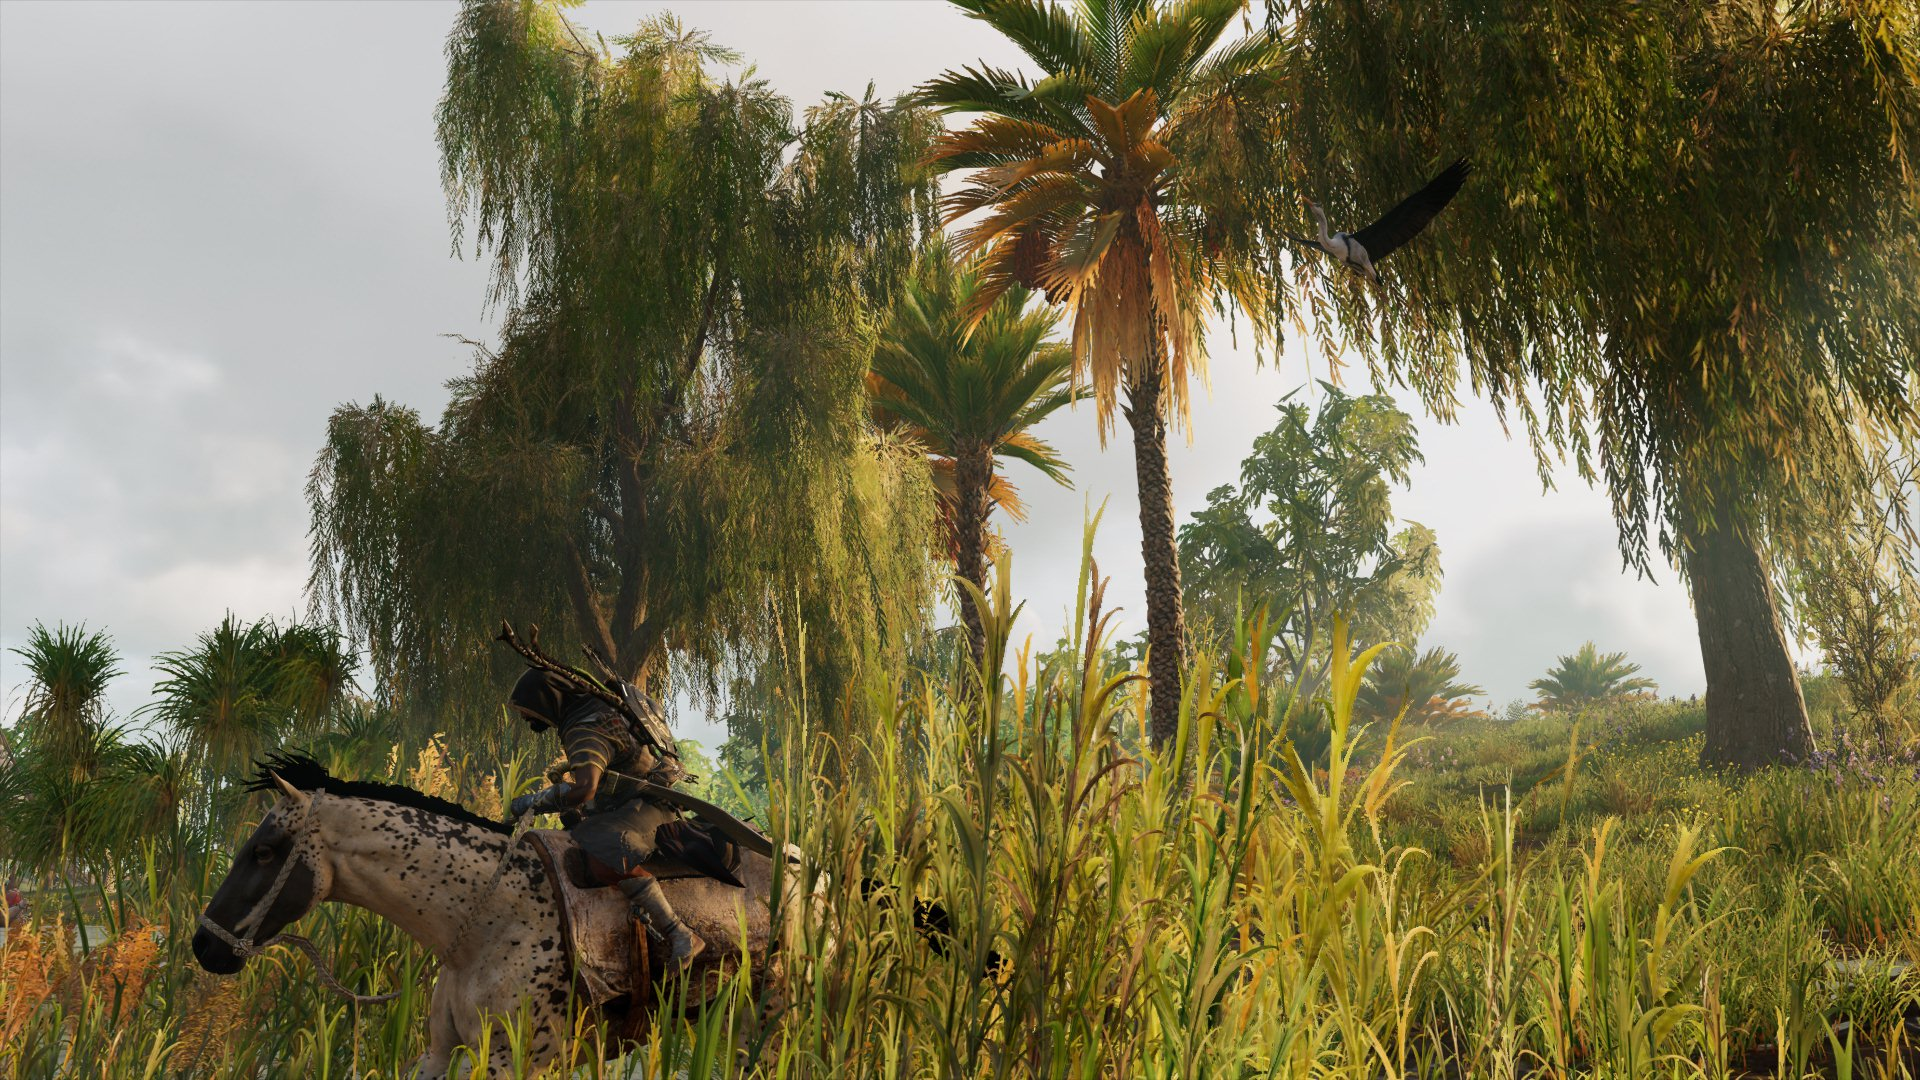 20180211184923.jpg - Assassin's Creed: Origins